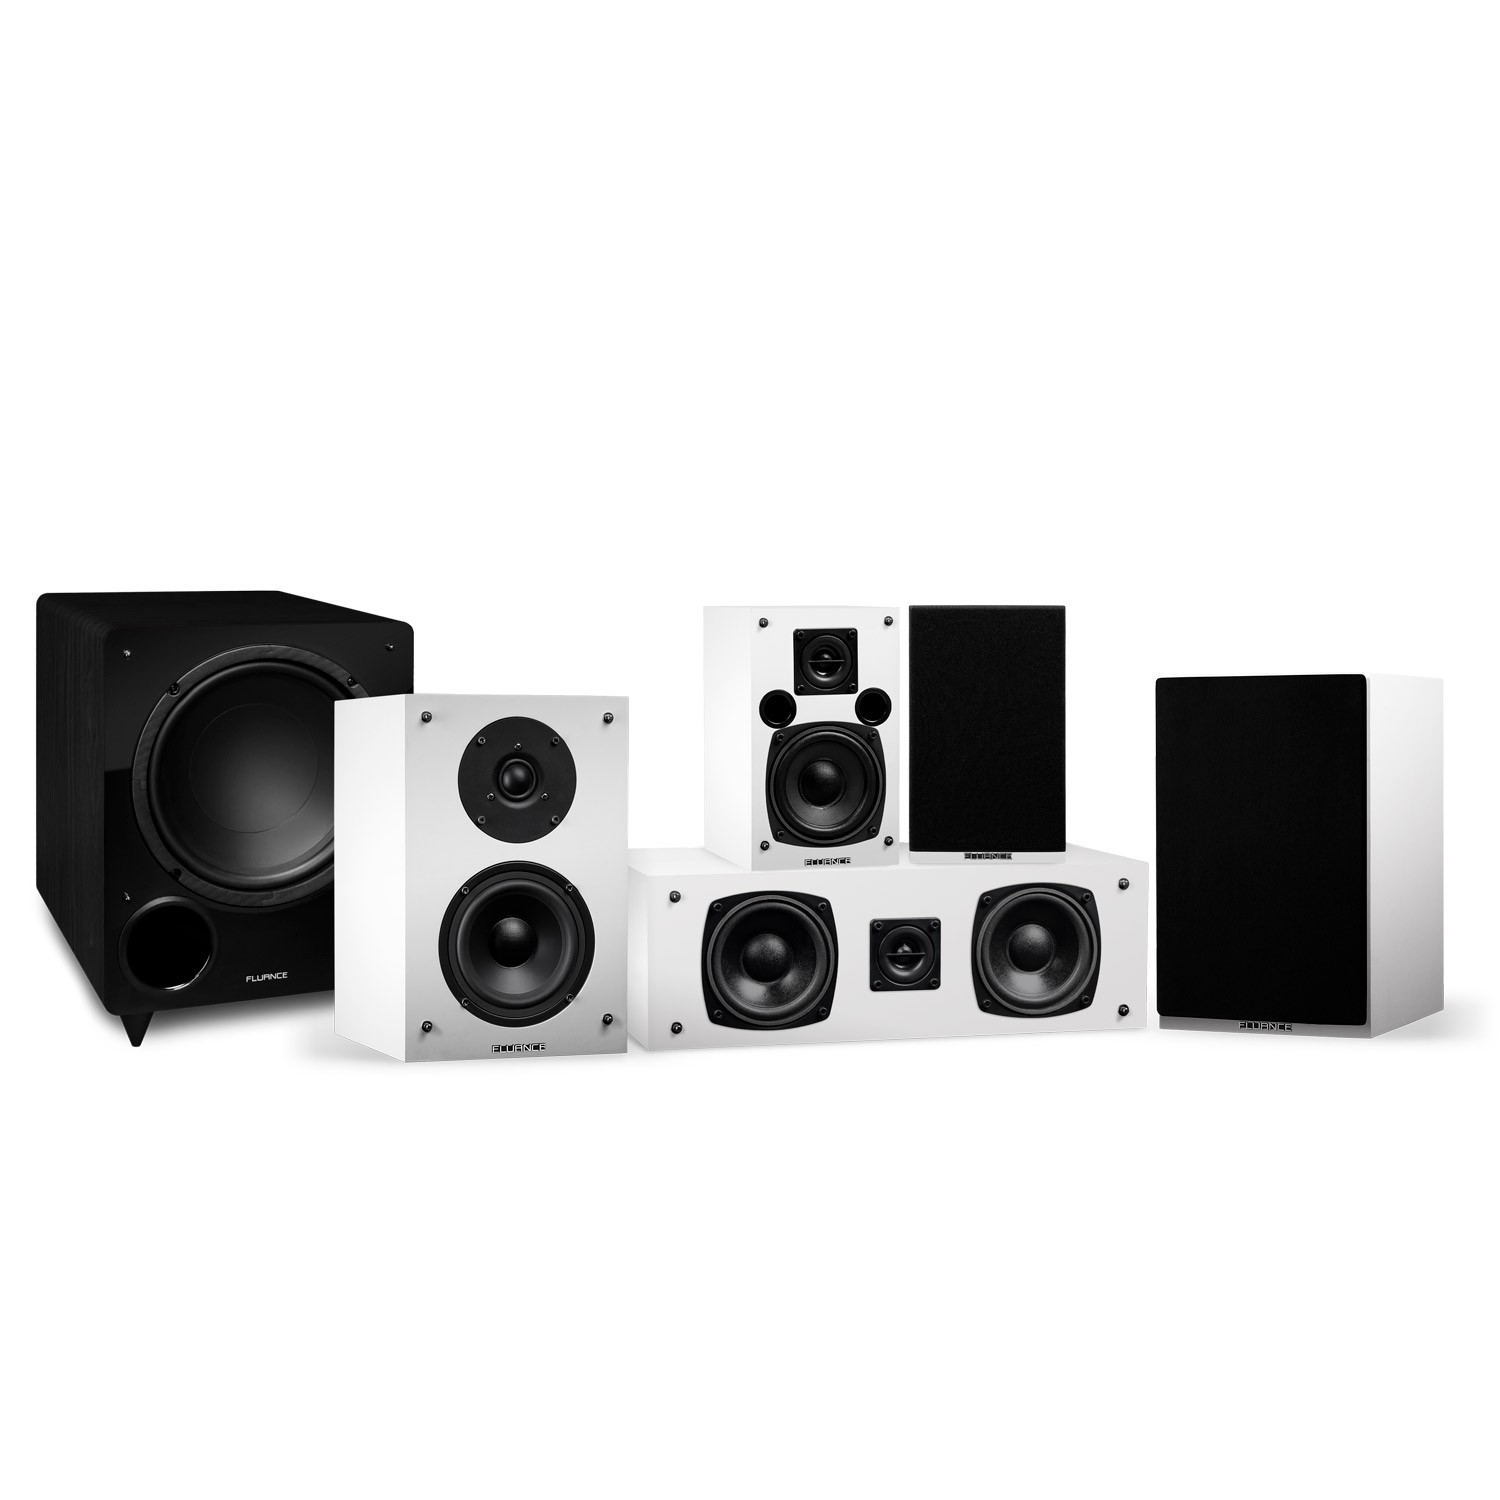 Elite Series Compact Surround Sound Home Theater 5.1 Channel Speaker System - Main